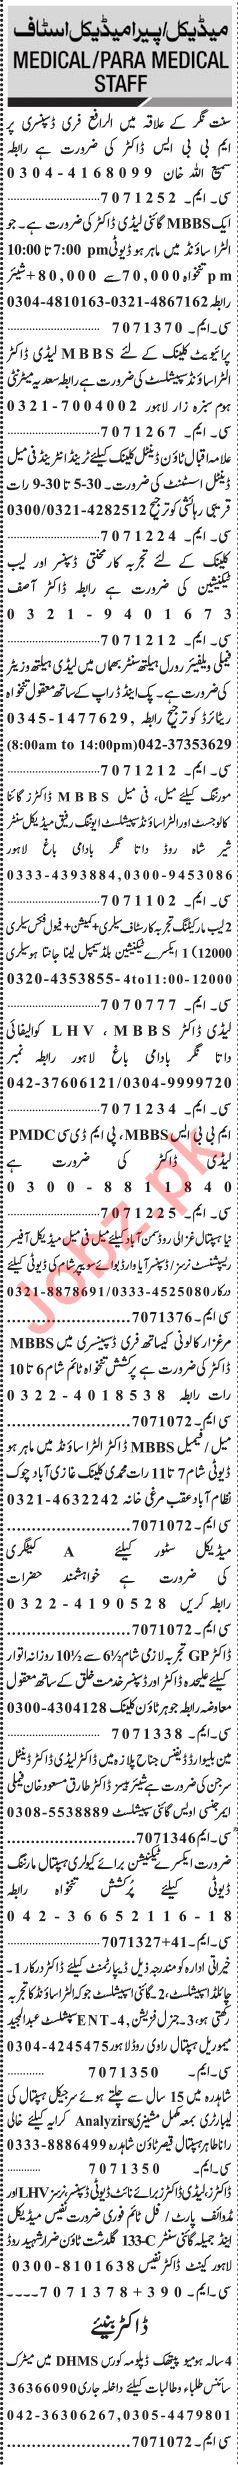 Jang Sunday Classified Ads 8th Sep 2019 for Paramedical